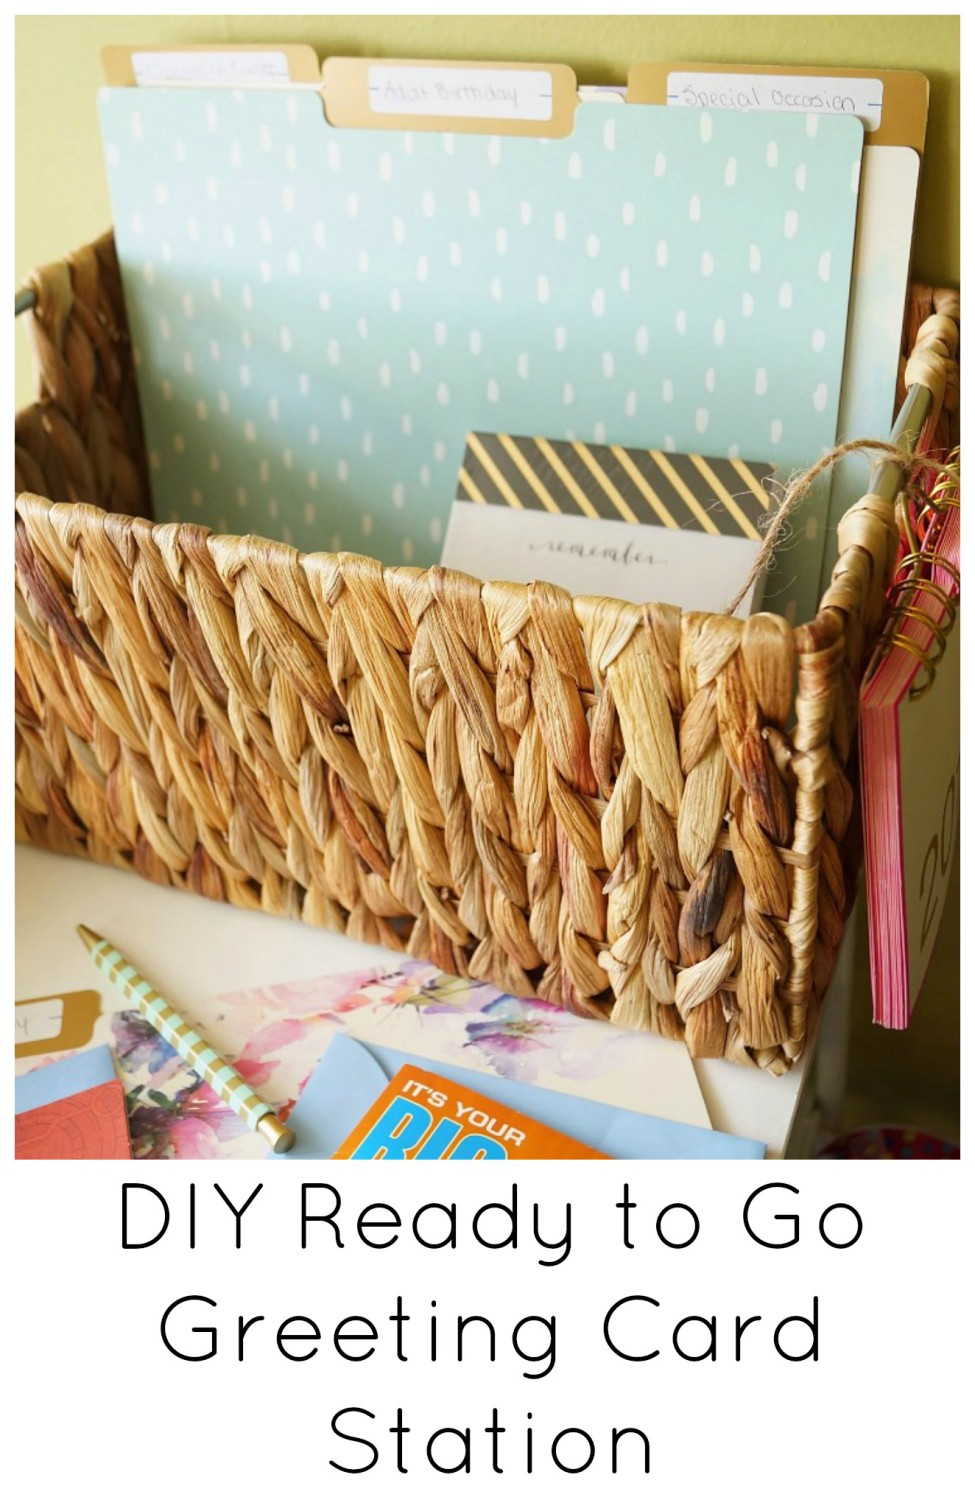 DIY Ready to Go Greeting Card Station. Never be without a card for the next birthday party or event you need to attend! This inexpensive and easy station is perfect to keep you organized.#ad #sharesmiles